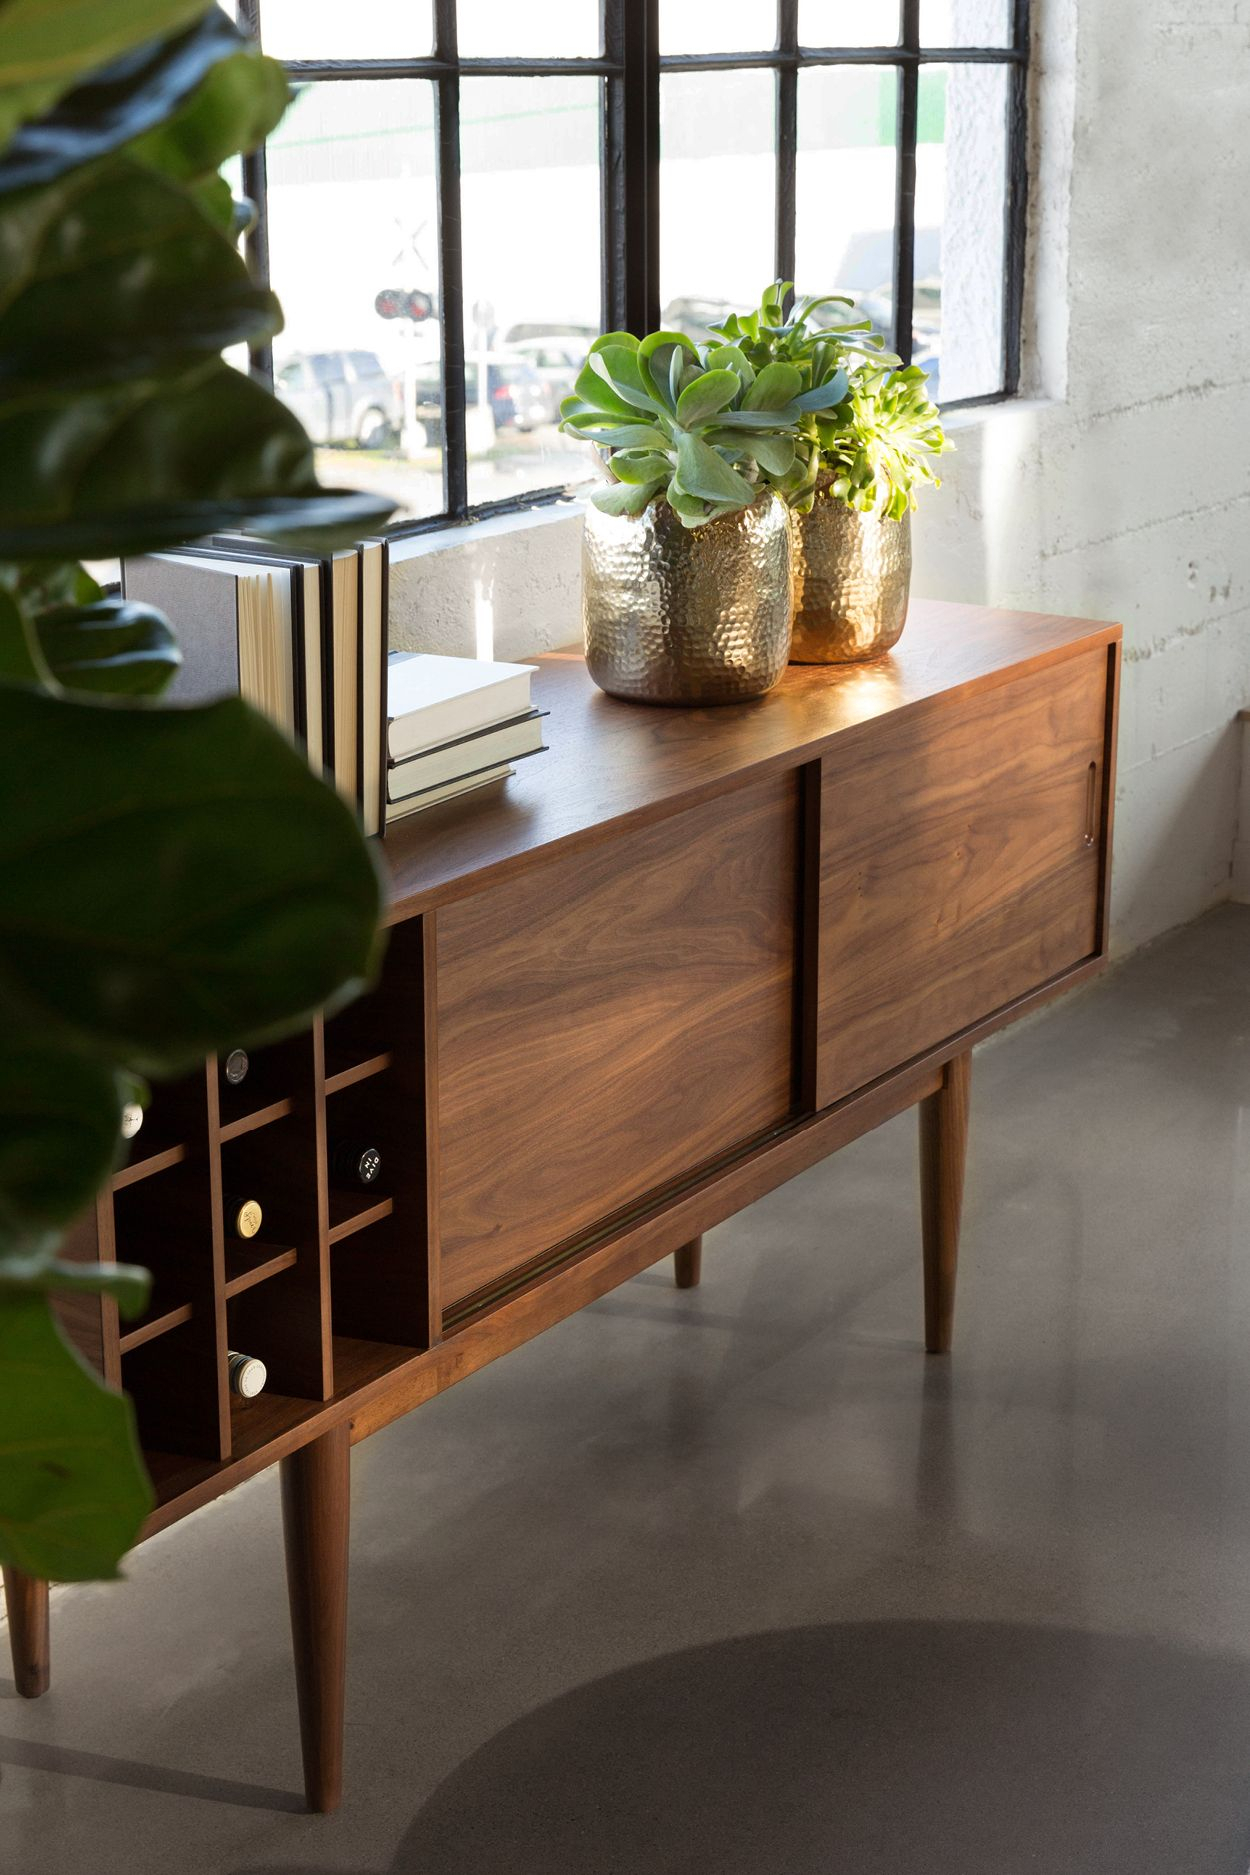 V Bar Sideboard | Mid Century In 2019 | Walnut Sideboard Throughout Newest Upper Stanton Sideboards (#17 of 20)